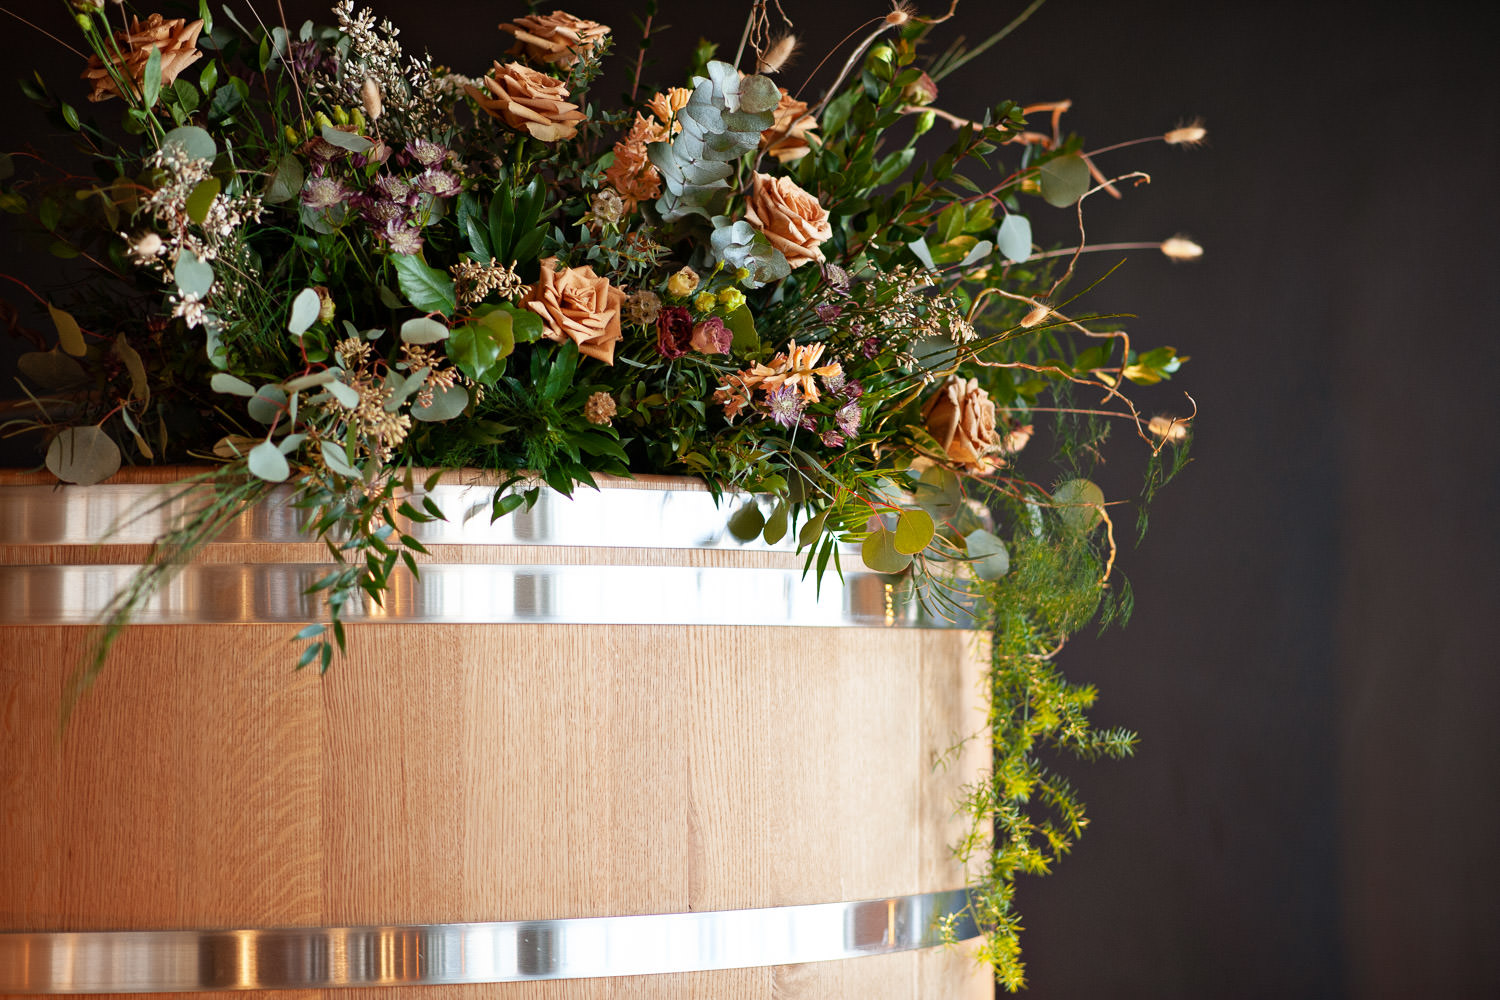 Florals by Sweet Bloom at an Annex Ale Project wedding captured by Tara Whittaker Photography